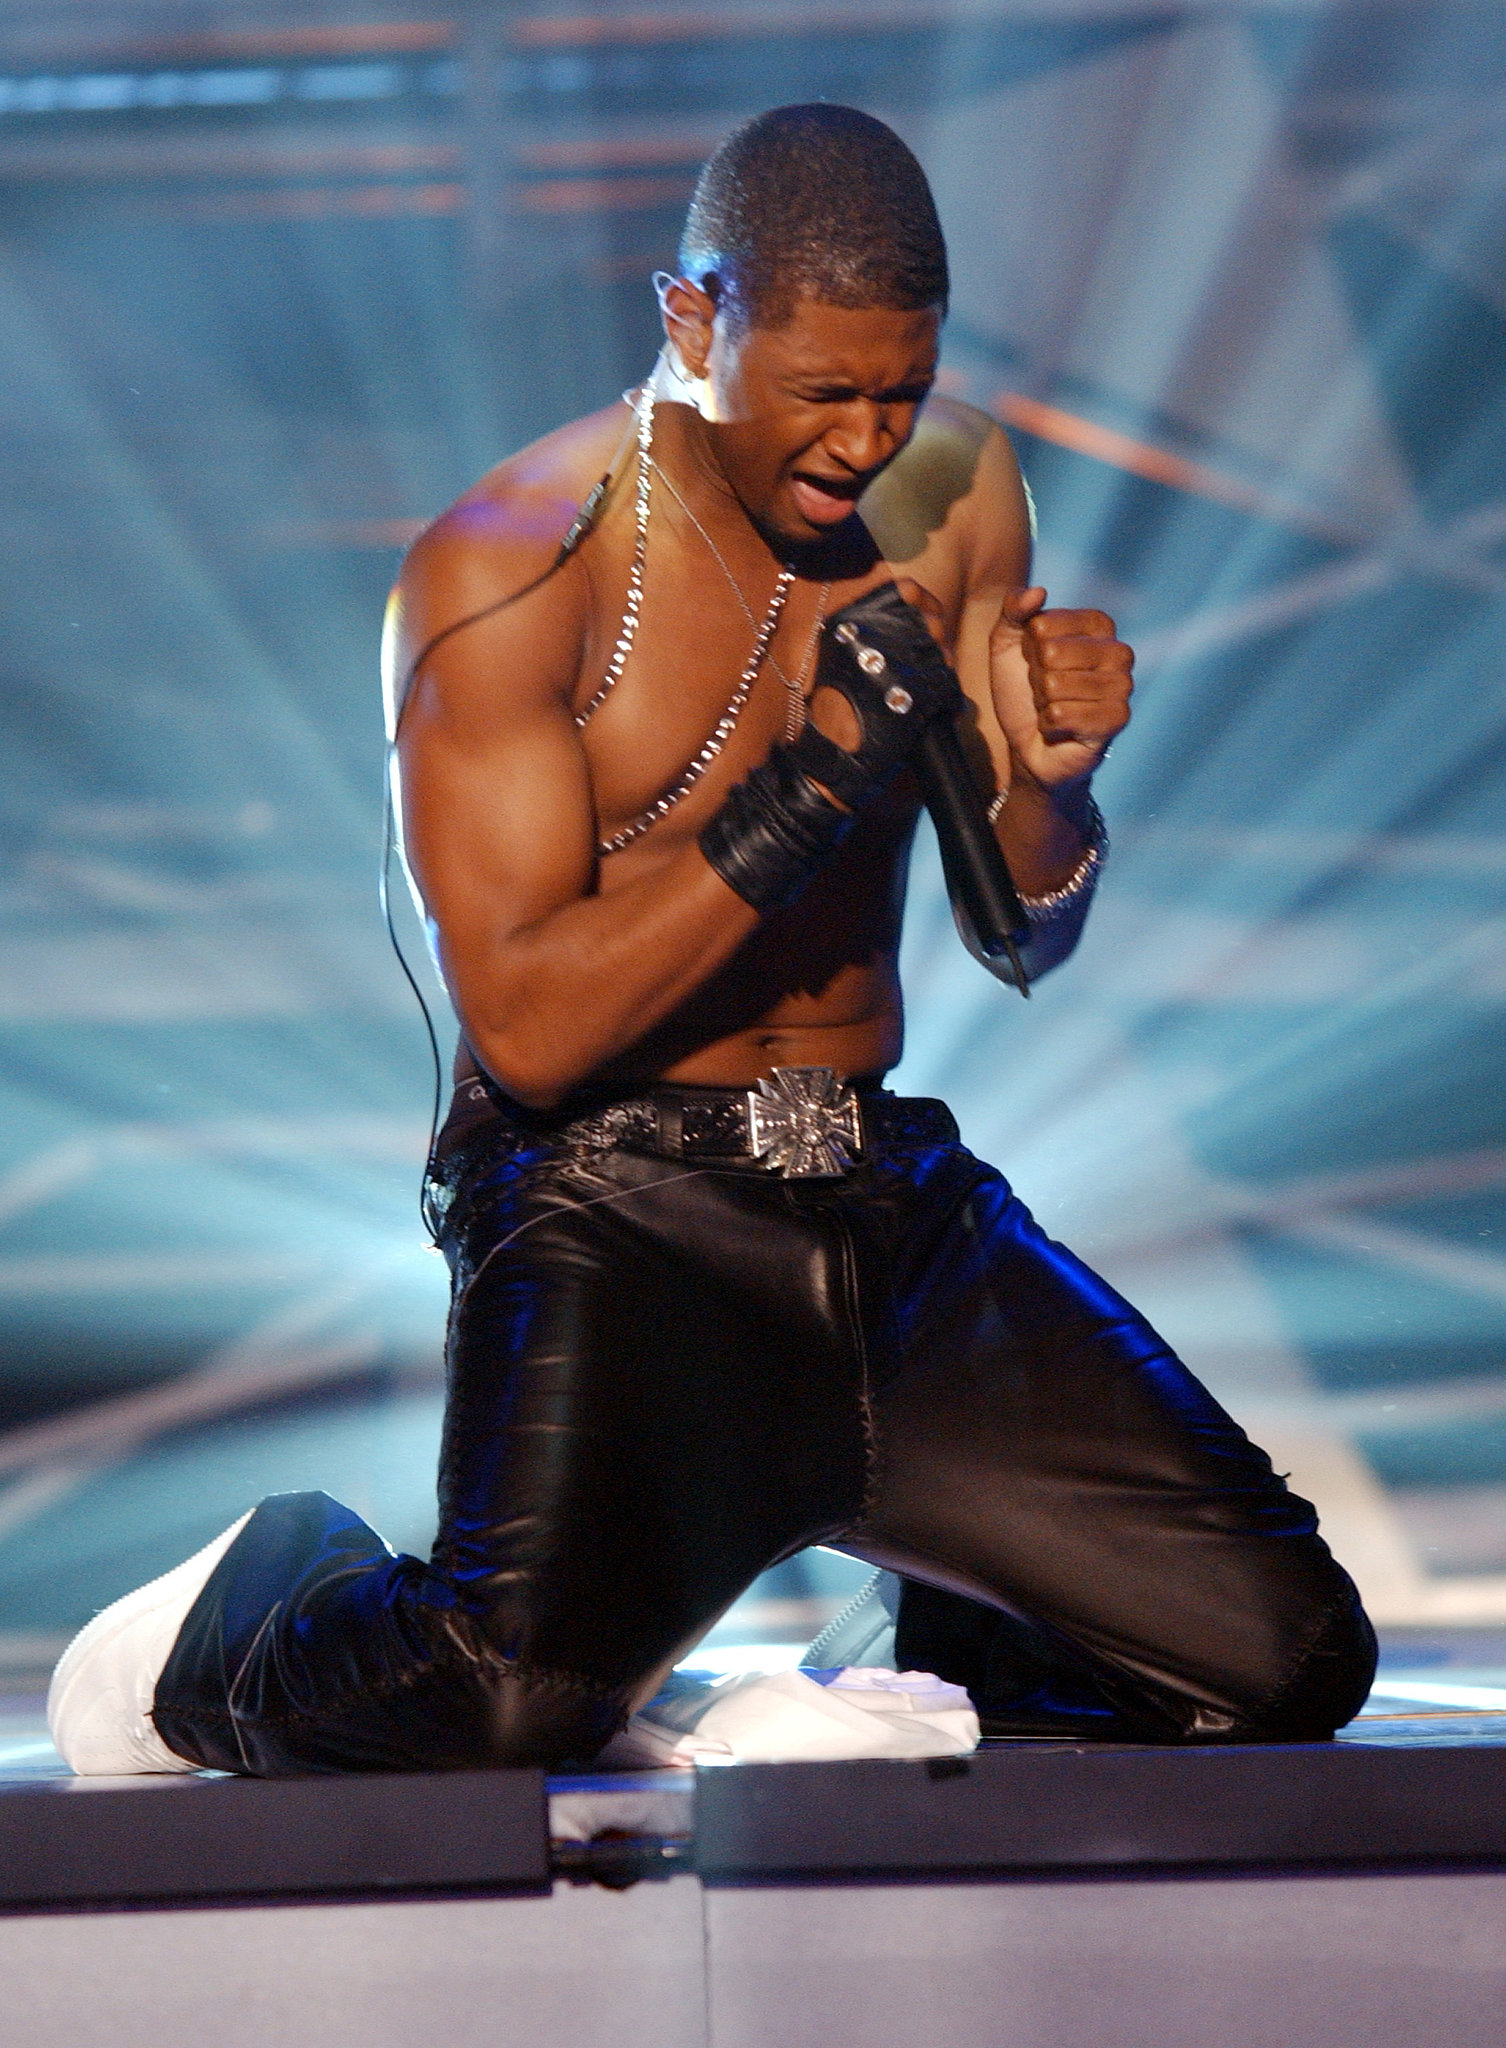 Usher performed shirtless in 2002.